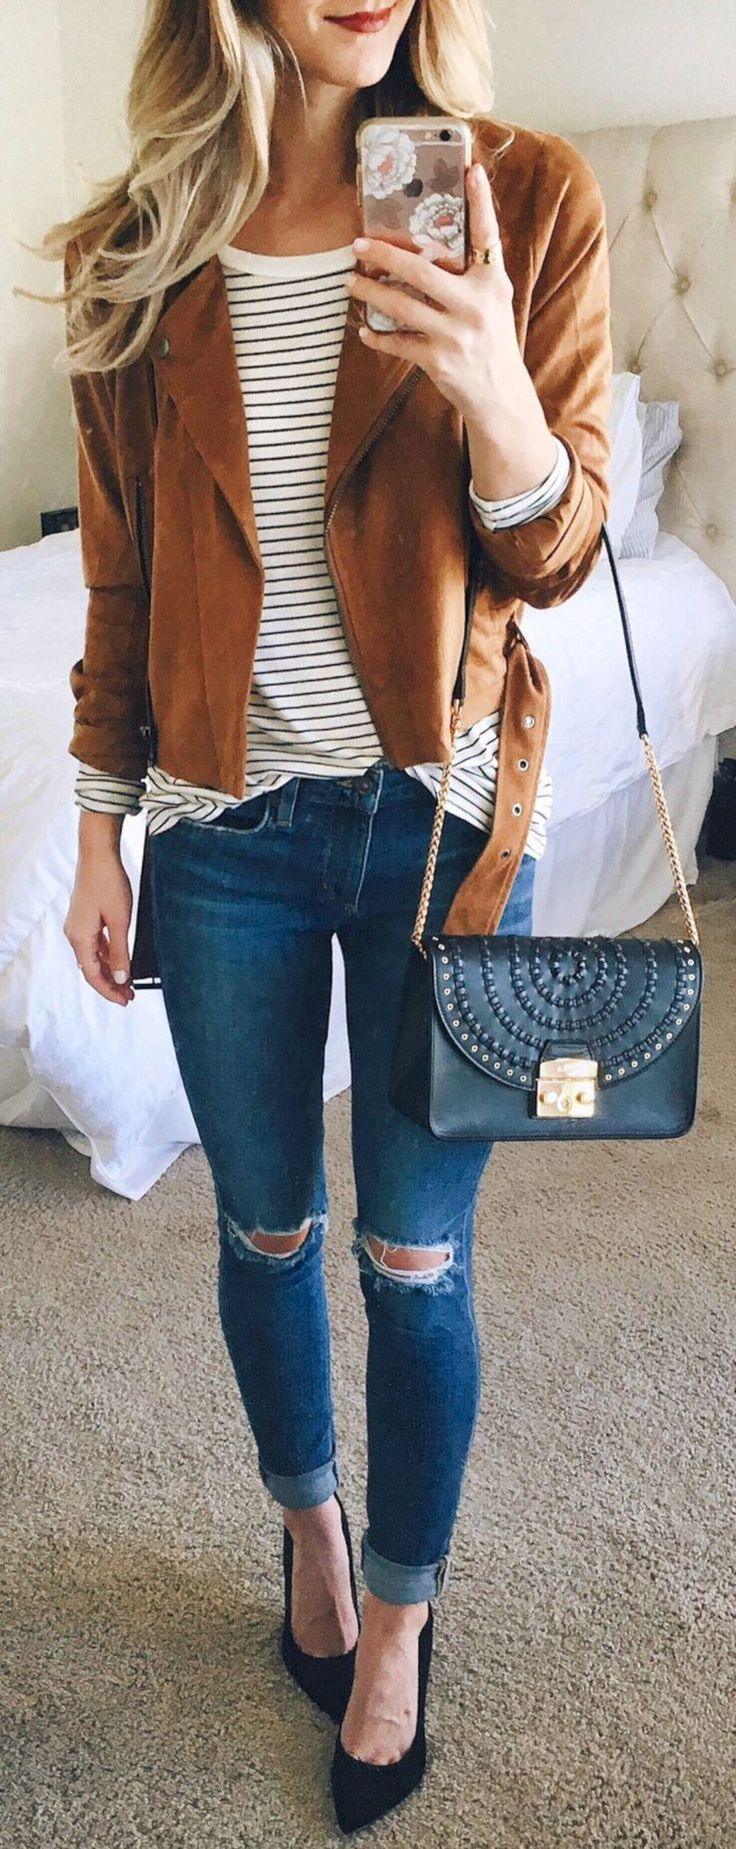 Awesome 61 Trending Fall Outfits Ideas to Fill Out Your Style from https://fashionetter.com/2017/08/12/61-trending-fall-outfits-ideas-fill-style/